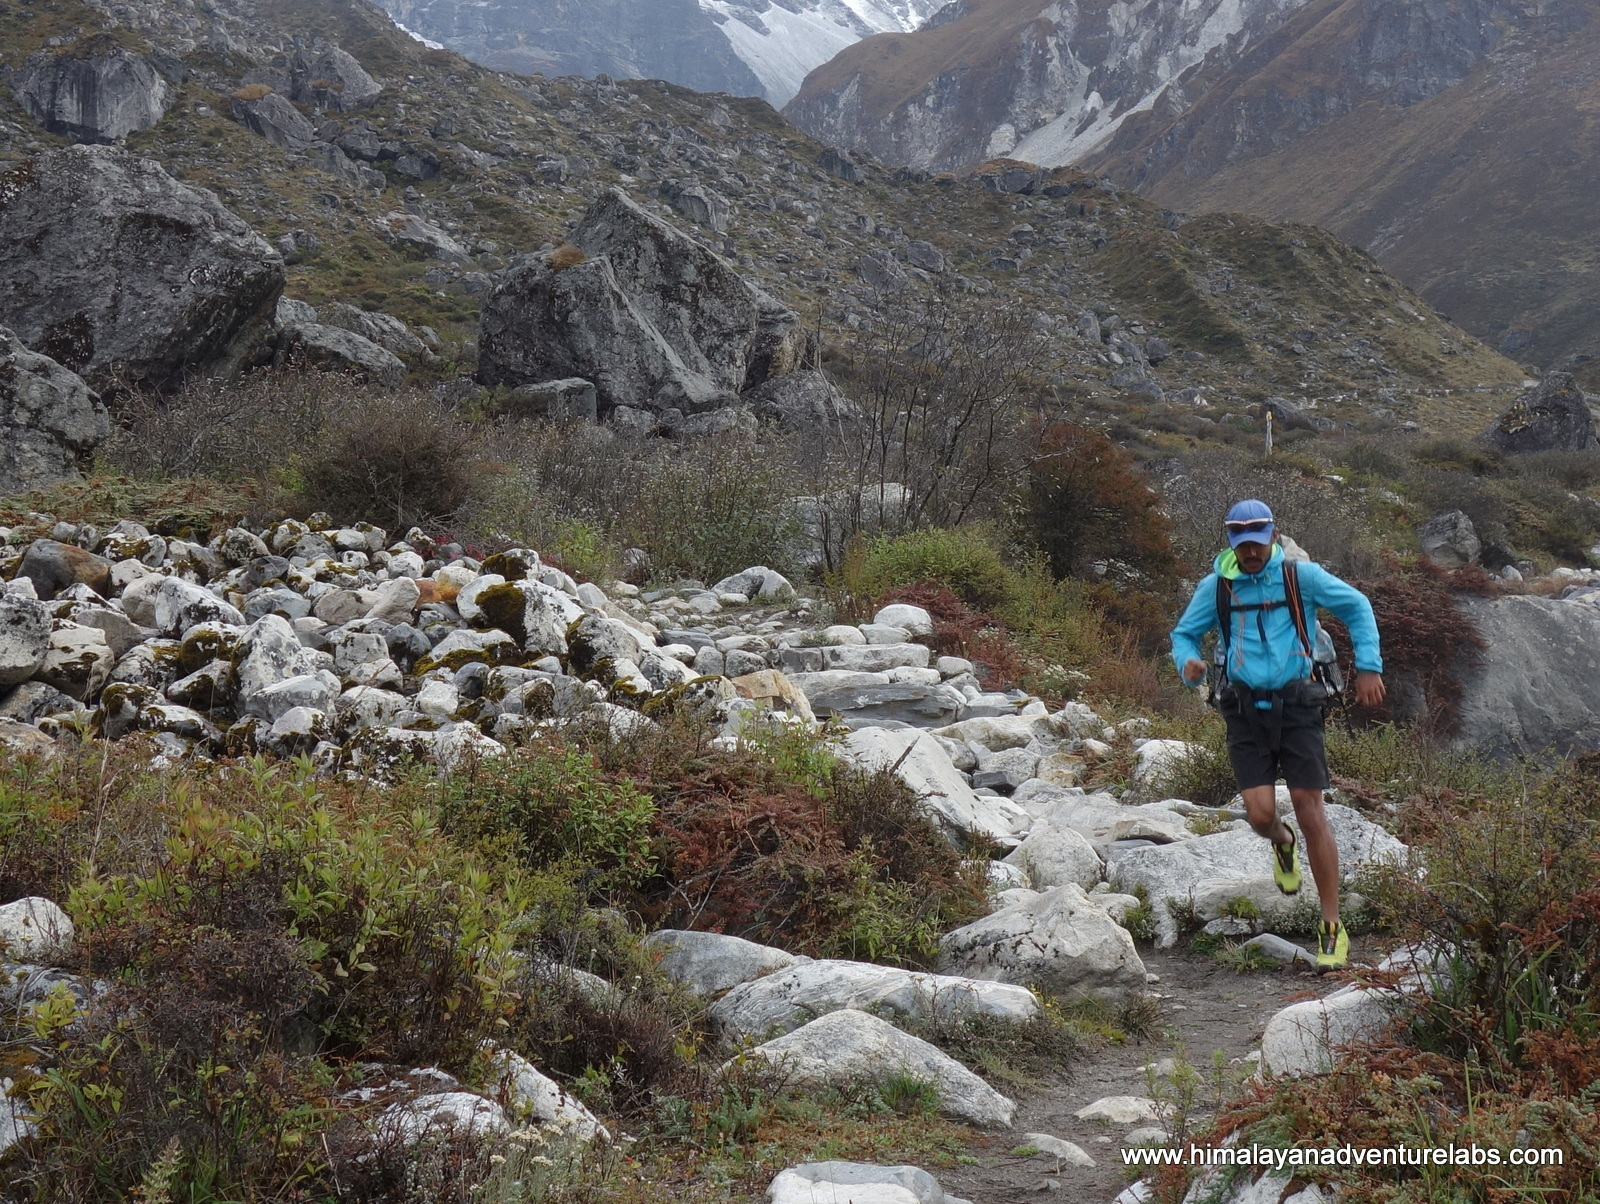 We are finally able to run on our fifth day - nice trails and a gradual descent. We ran and hiked the length of the Langtang valley from Kyang Jin to Syrabu in about 8 hrs